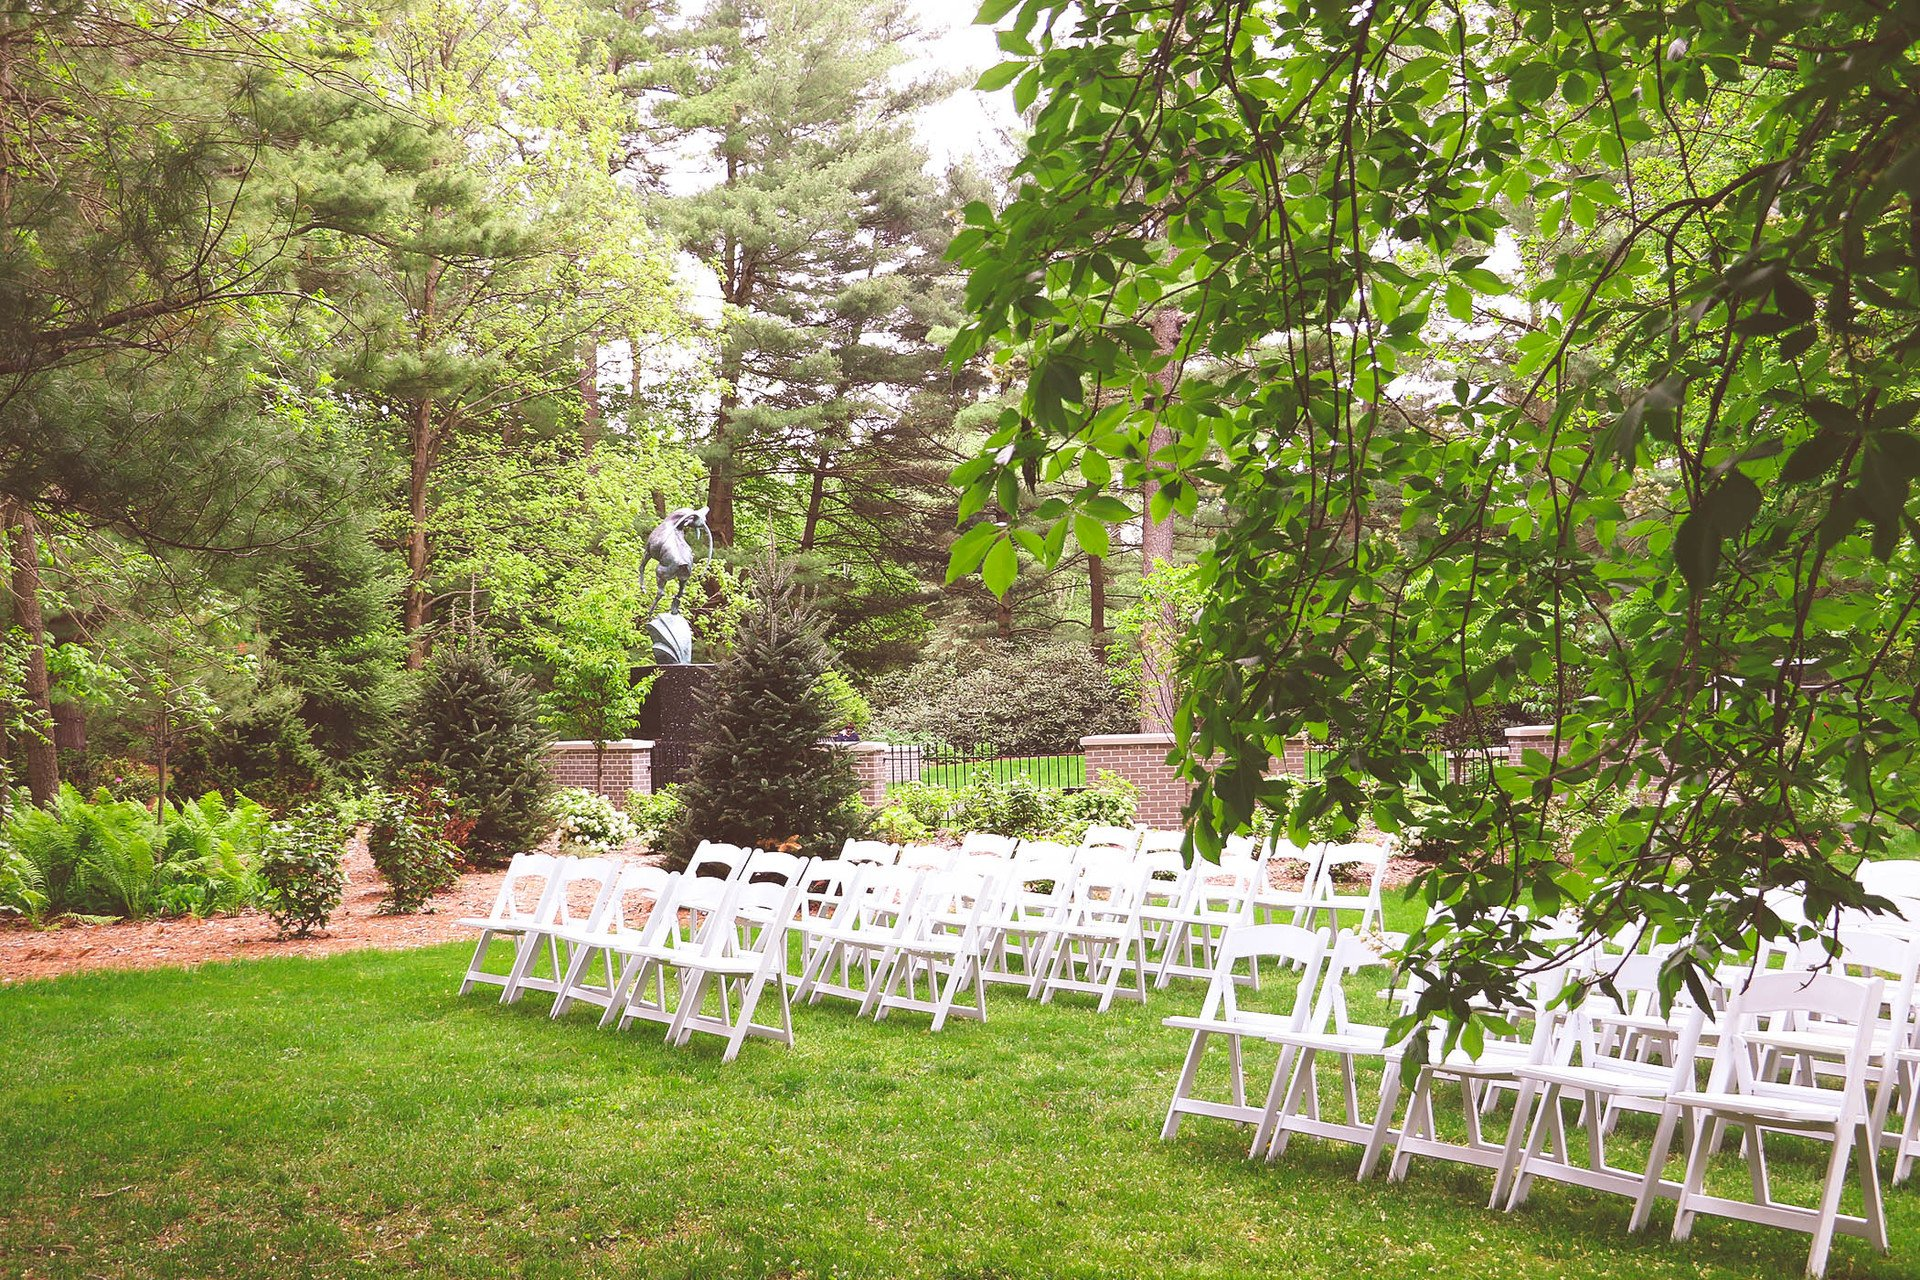 White Chairs outside